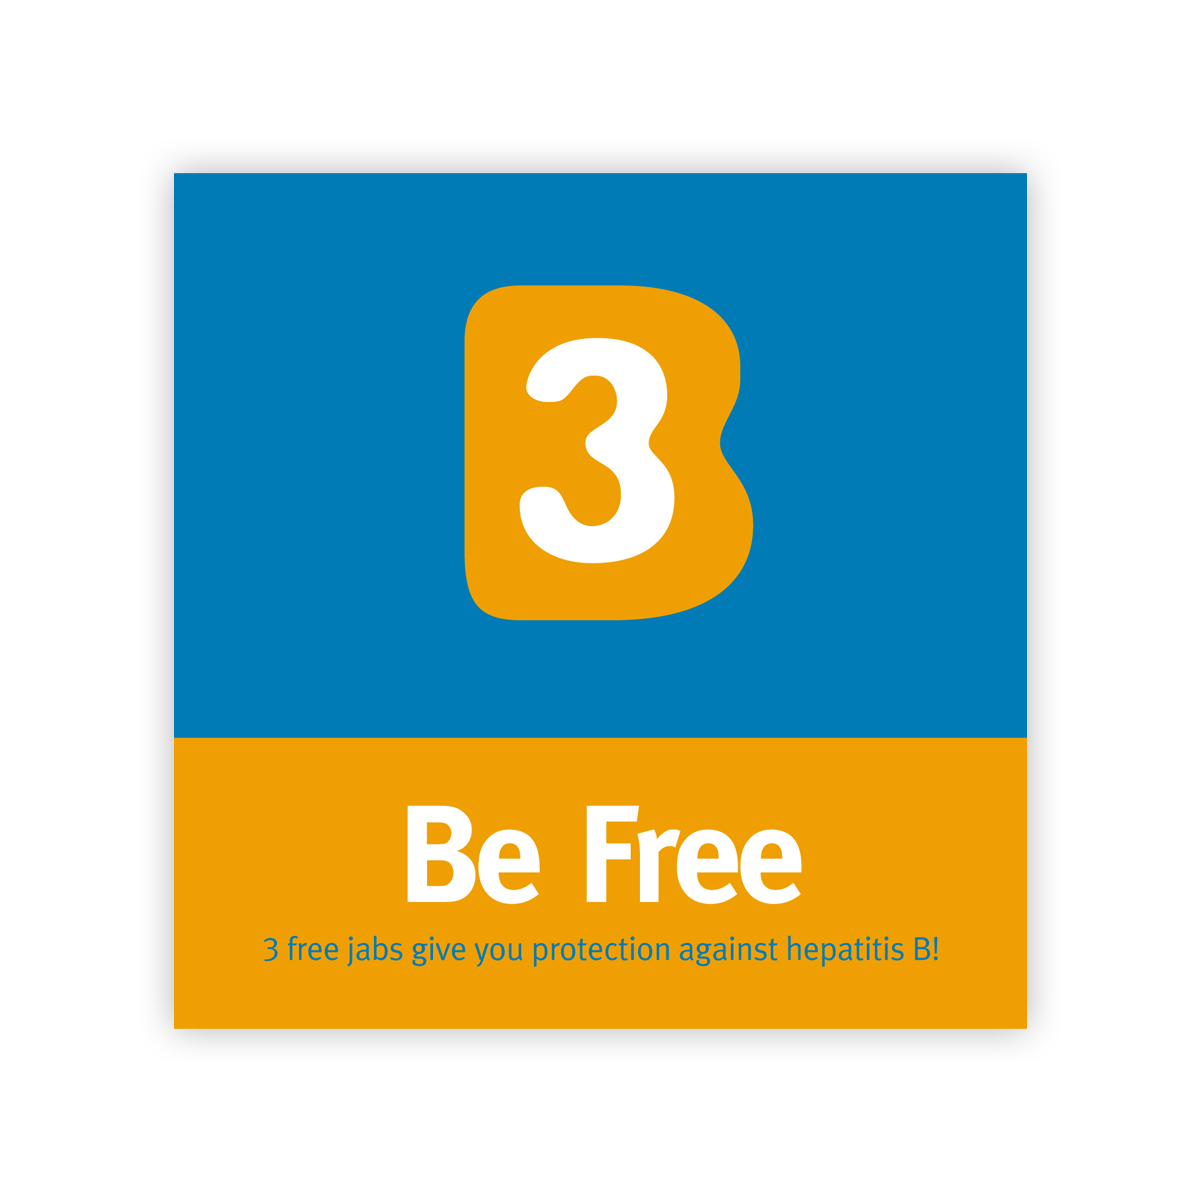 'B3 Be Free' campaign: Hep B vaccination leaflet